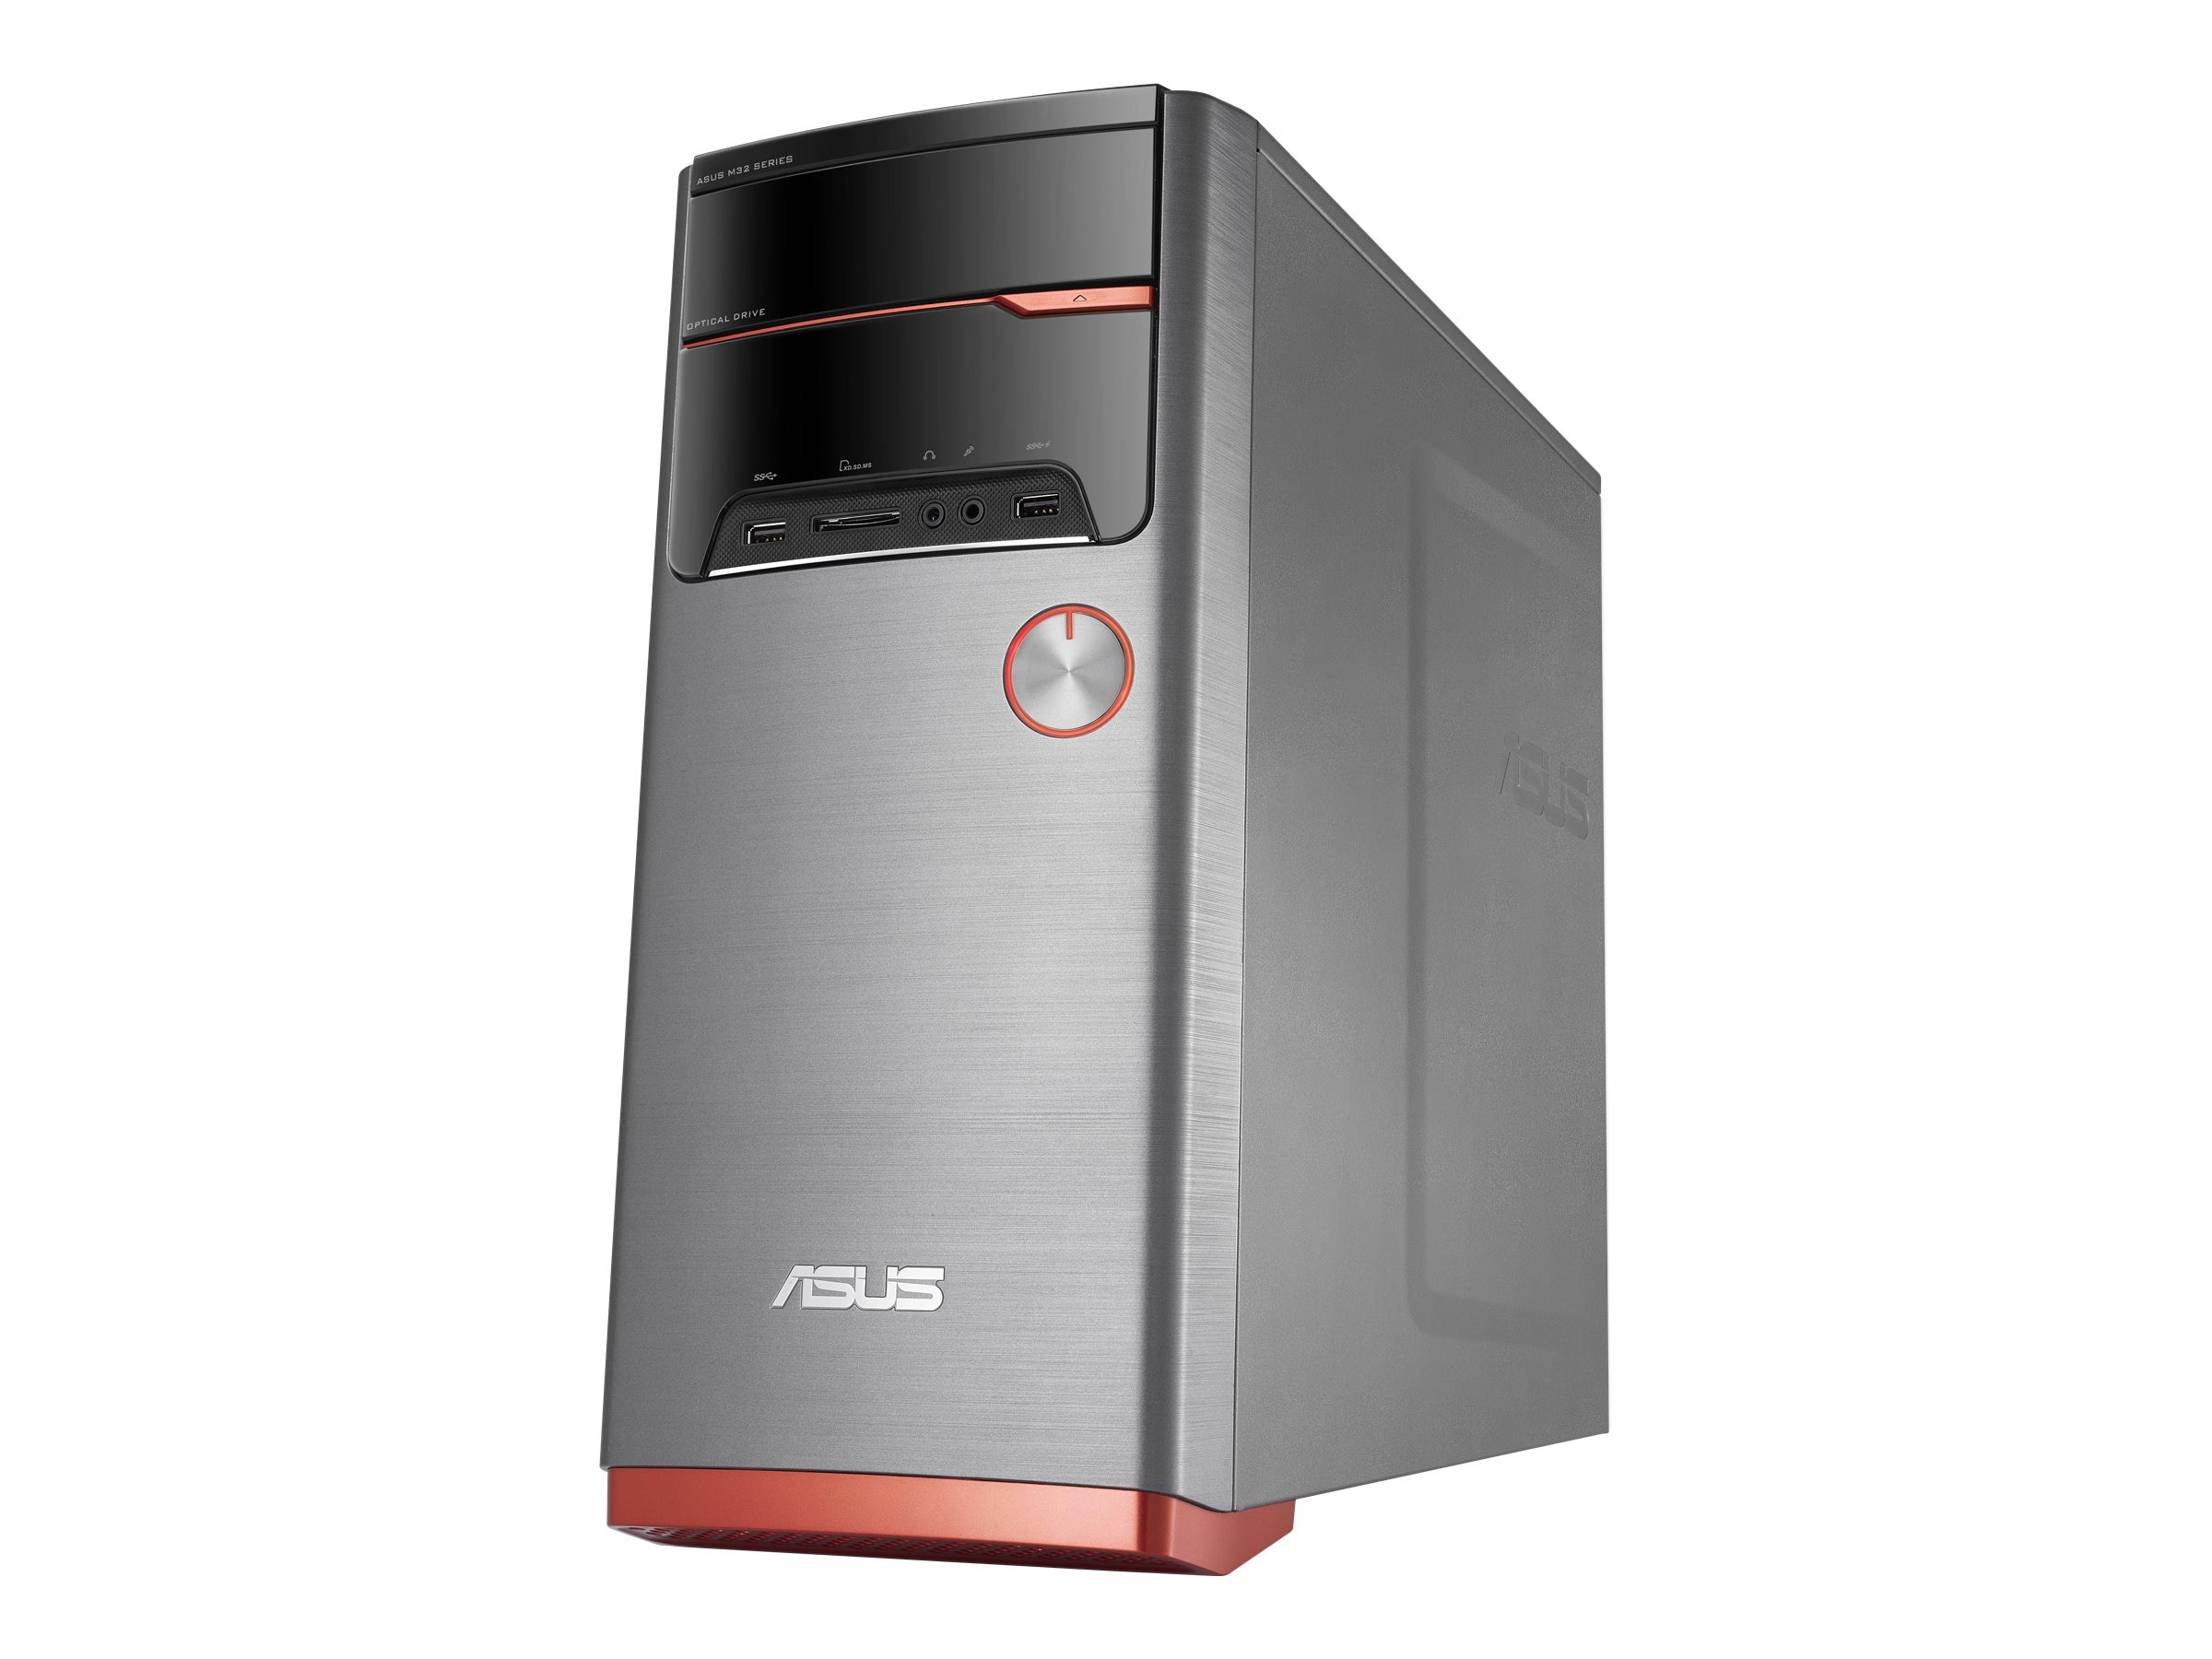 Asus M32AD-US004T Desktop Core i3-4160 3.6GHz 4GB 1TB W10, M32AD-US004T